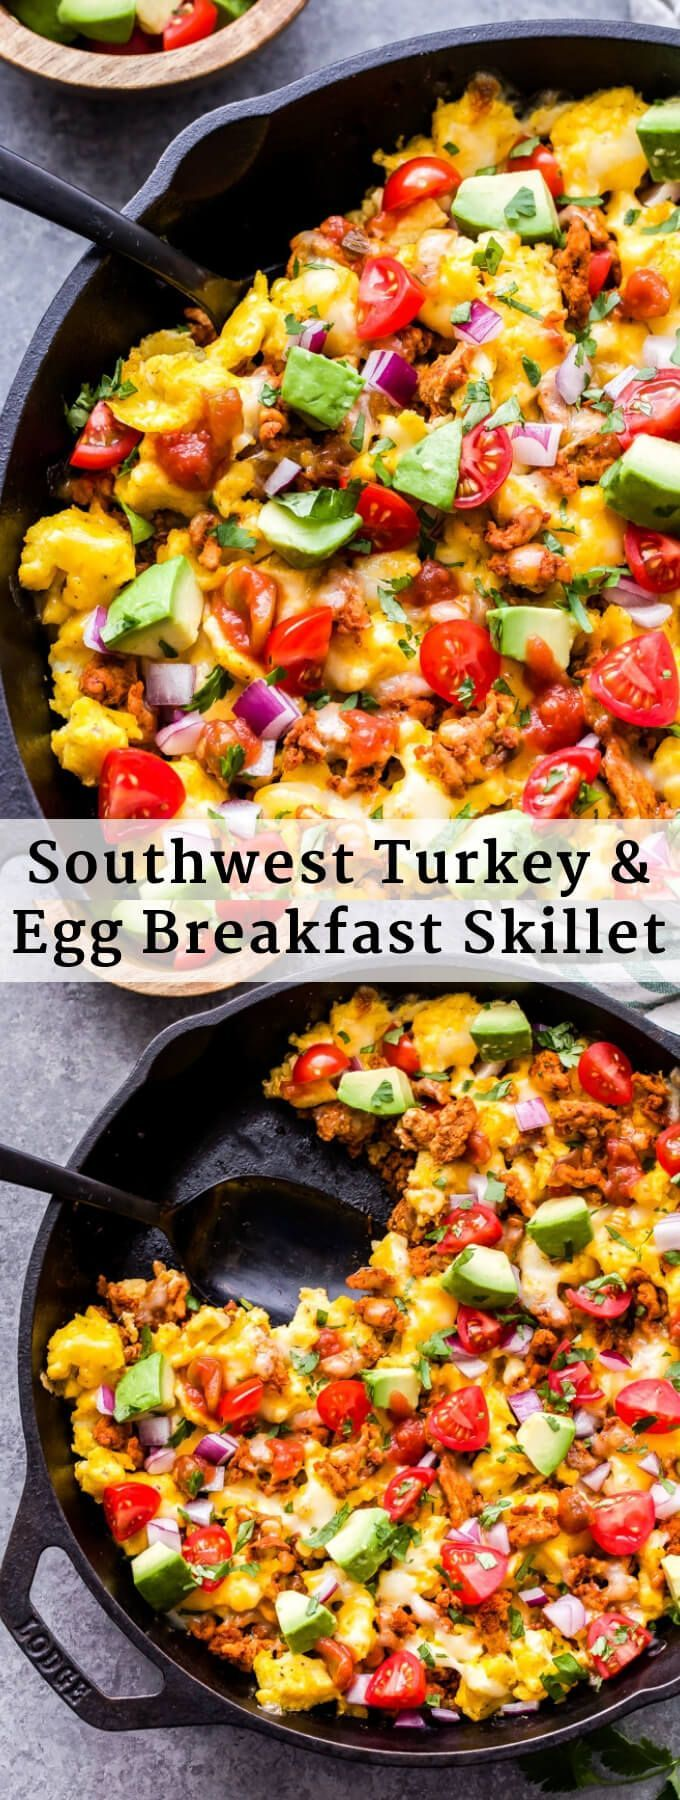 This Southwest Turkey And Egg Breakfast Skillet Is A Delicious And Filling Way To Start Your Day Sou Breakfast Skillet Recipes Breakfast Skillet Egg Breakfast